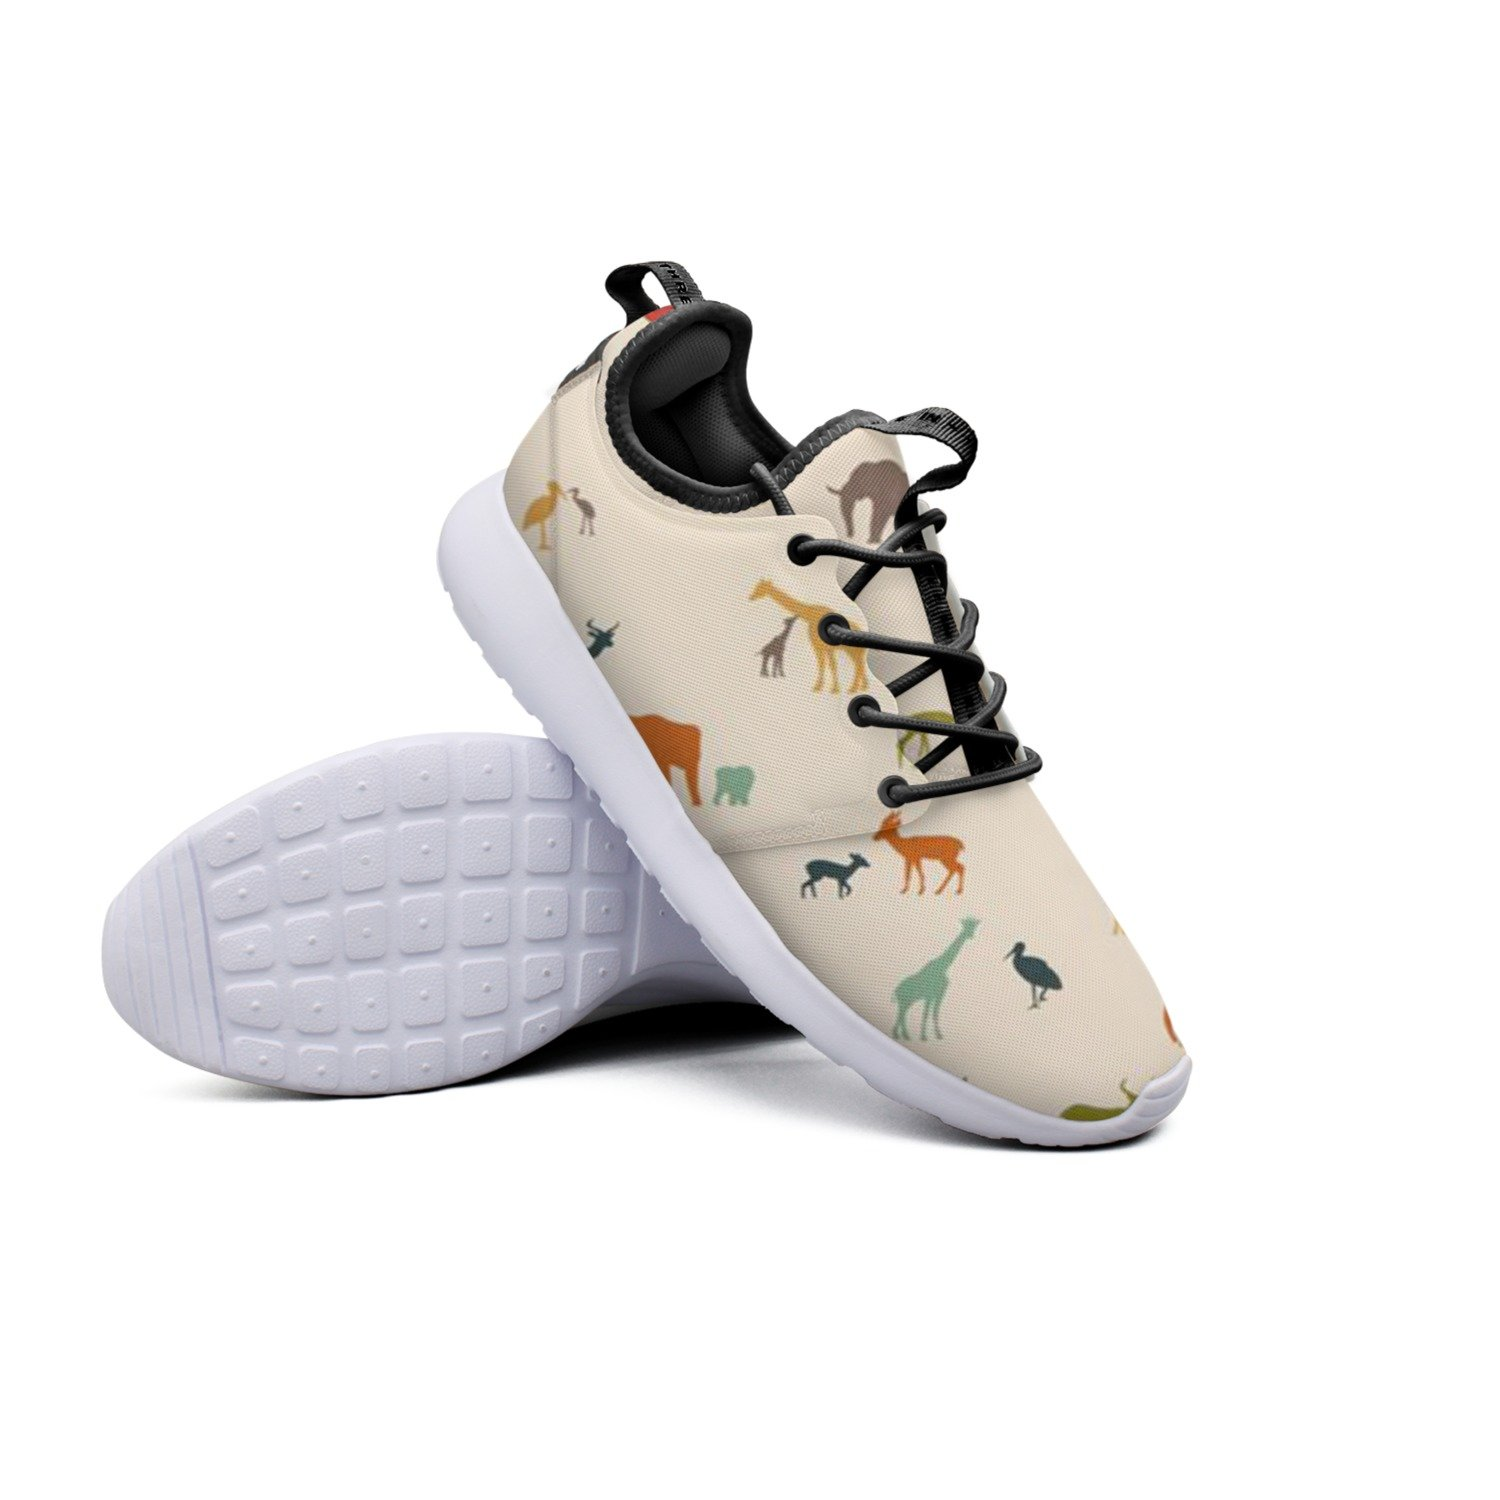 YYuuijk Elephant Giraffe Bird Birch Net Women's Tennis Shoes Casual Cute Comfortable Trendy Hip Hop Retro Retro Vintage Popular Mesh Lightweight Running Sneakers